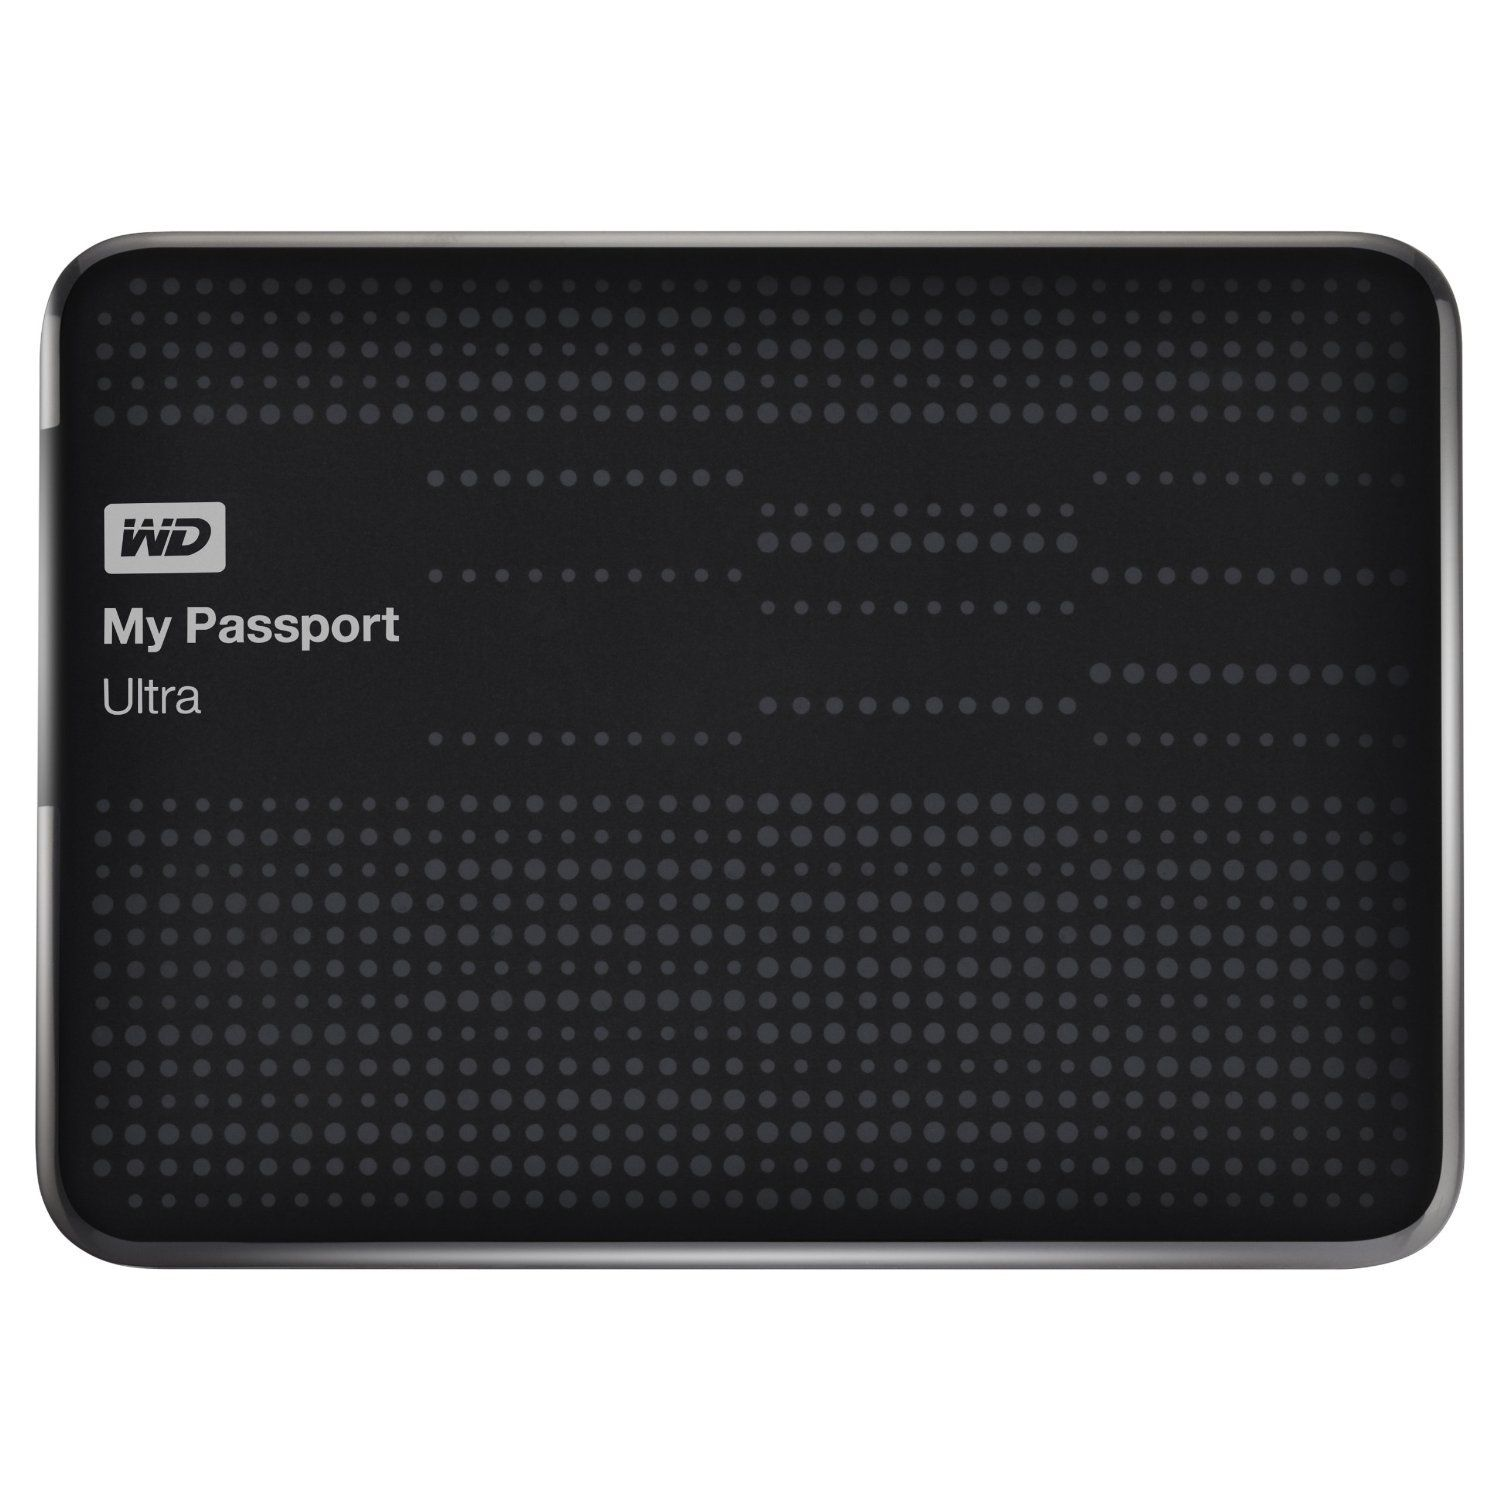 My Passport Ultra Portable Hard Drive Features Wd Smartware Pro Backup Software That Lets Portable External Hard Drive Portable Hard Drives External Hard Drive